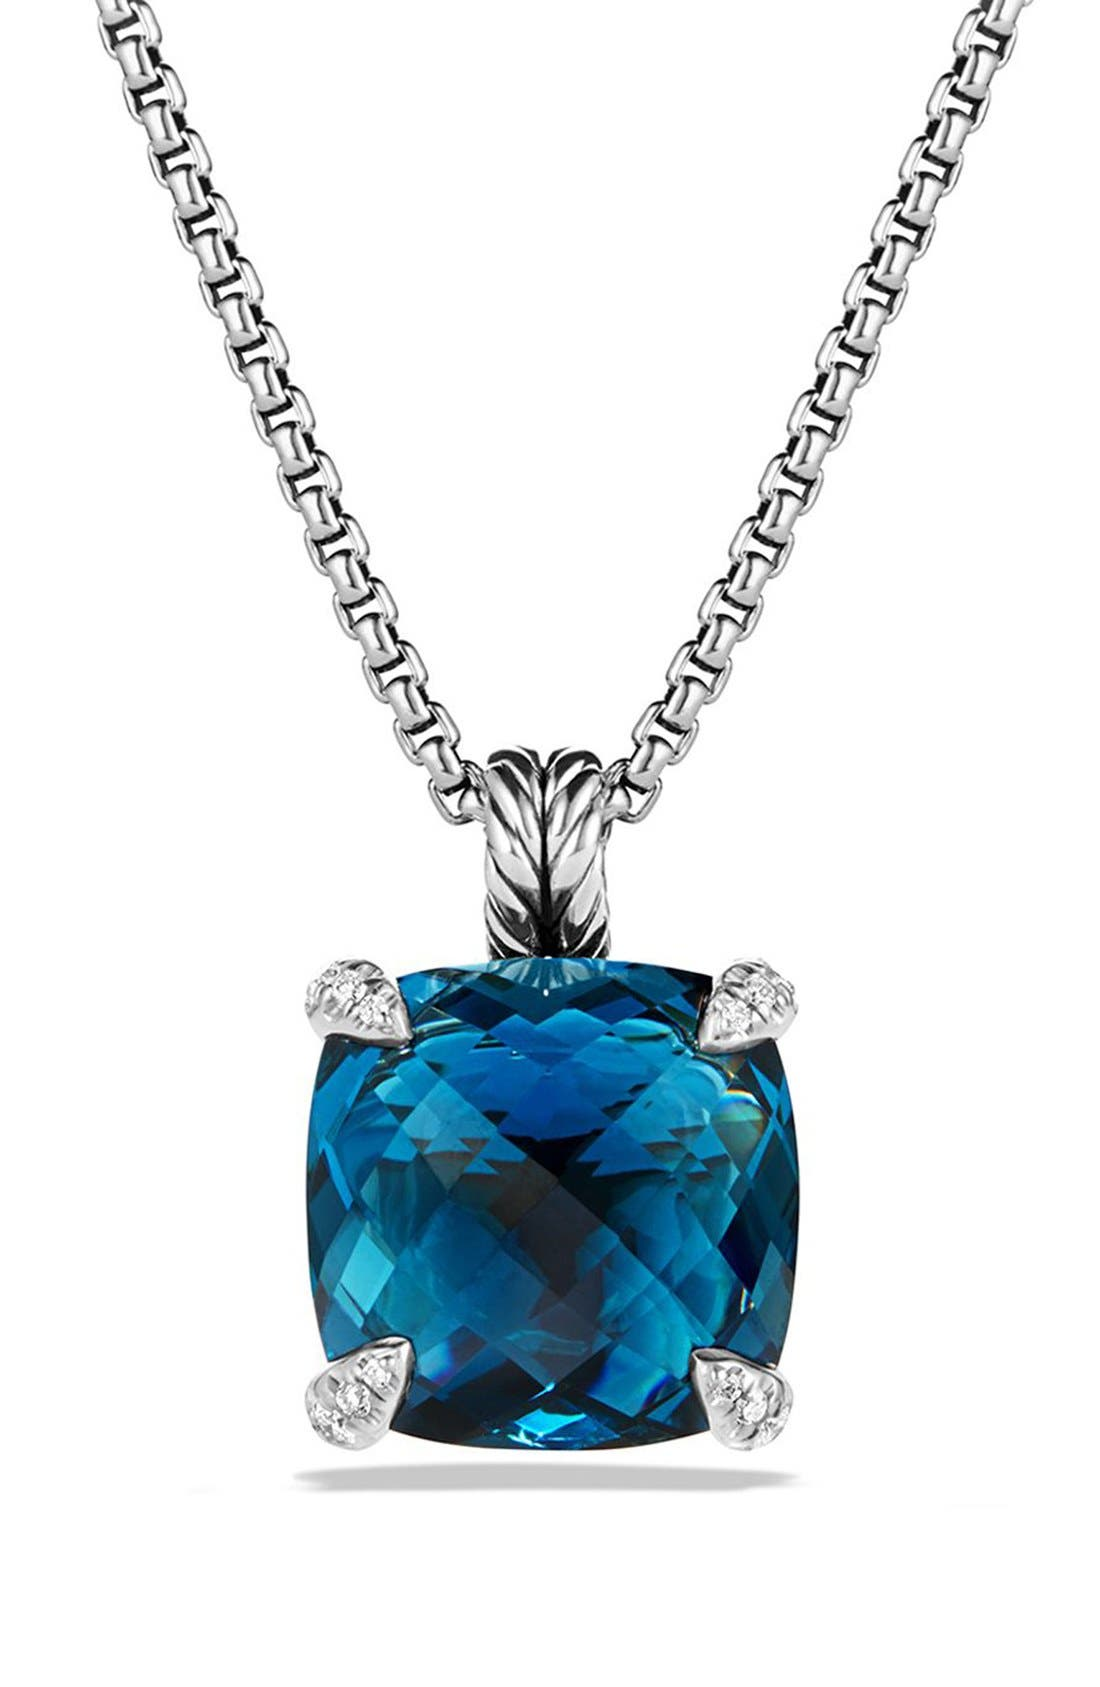 David Yurman 'Châtelaine' Pendant Necklace with Semiprecious Stone and Diamonds